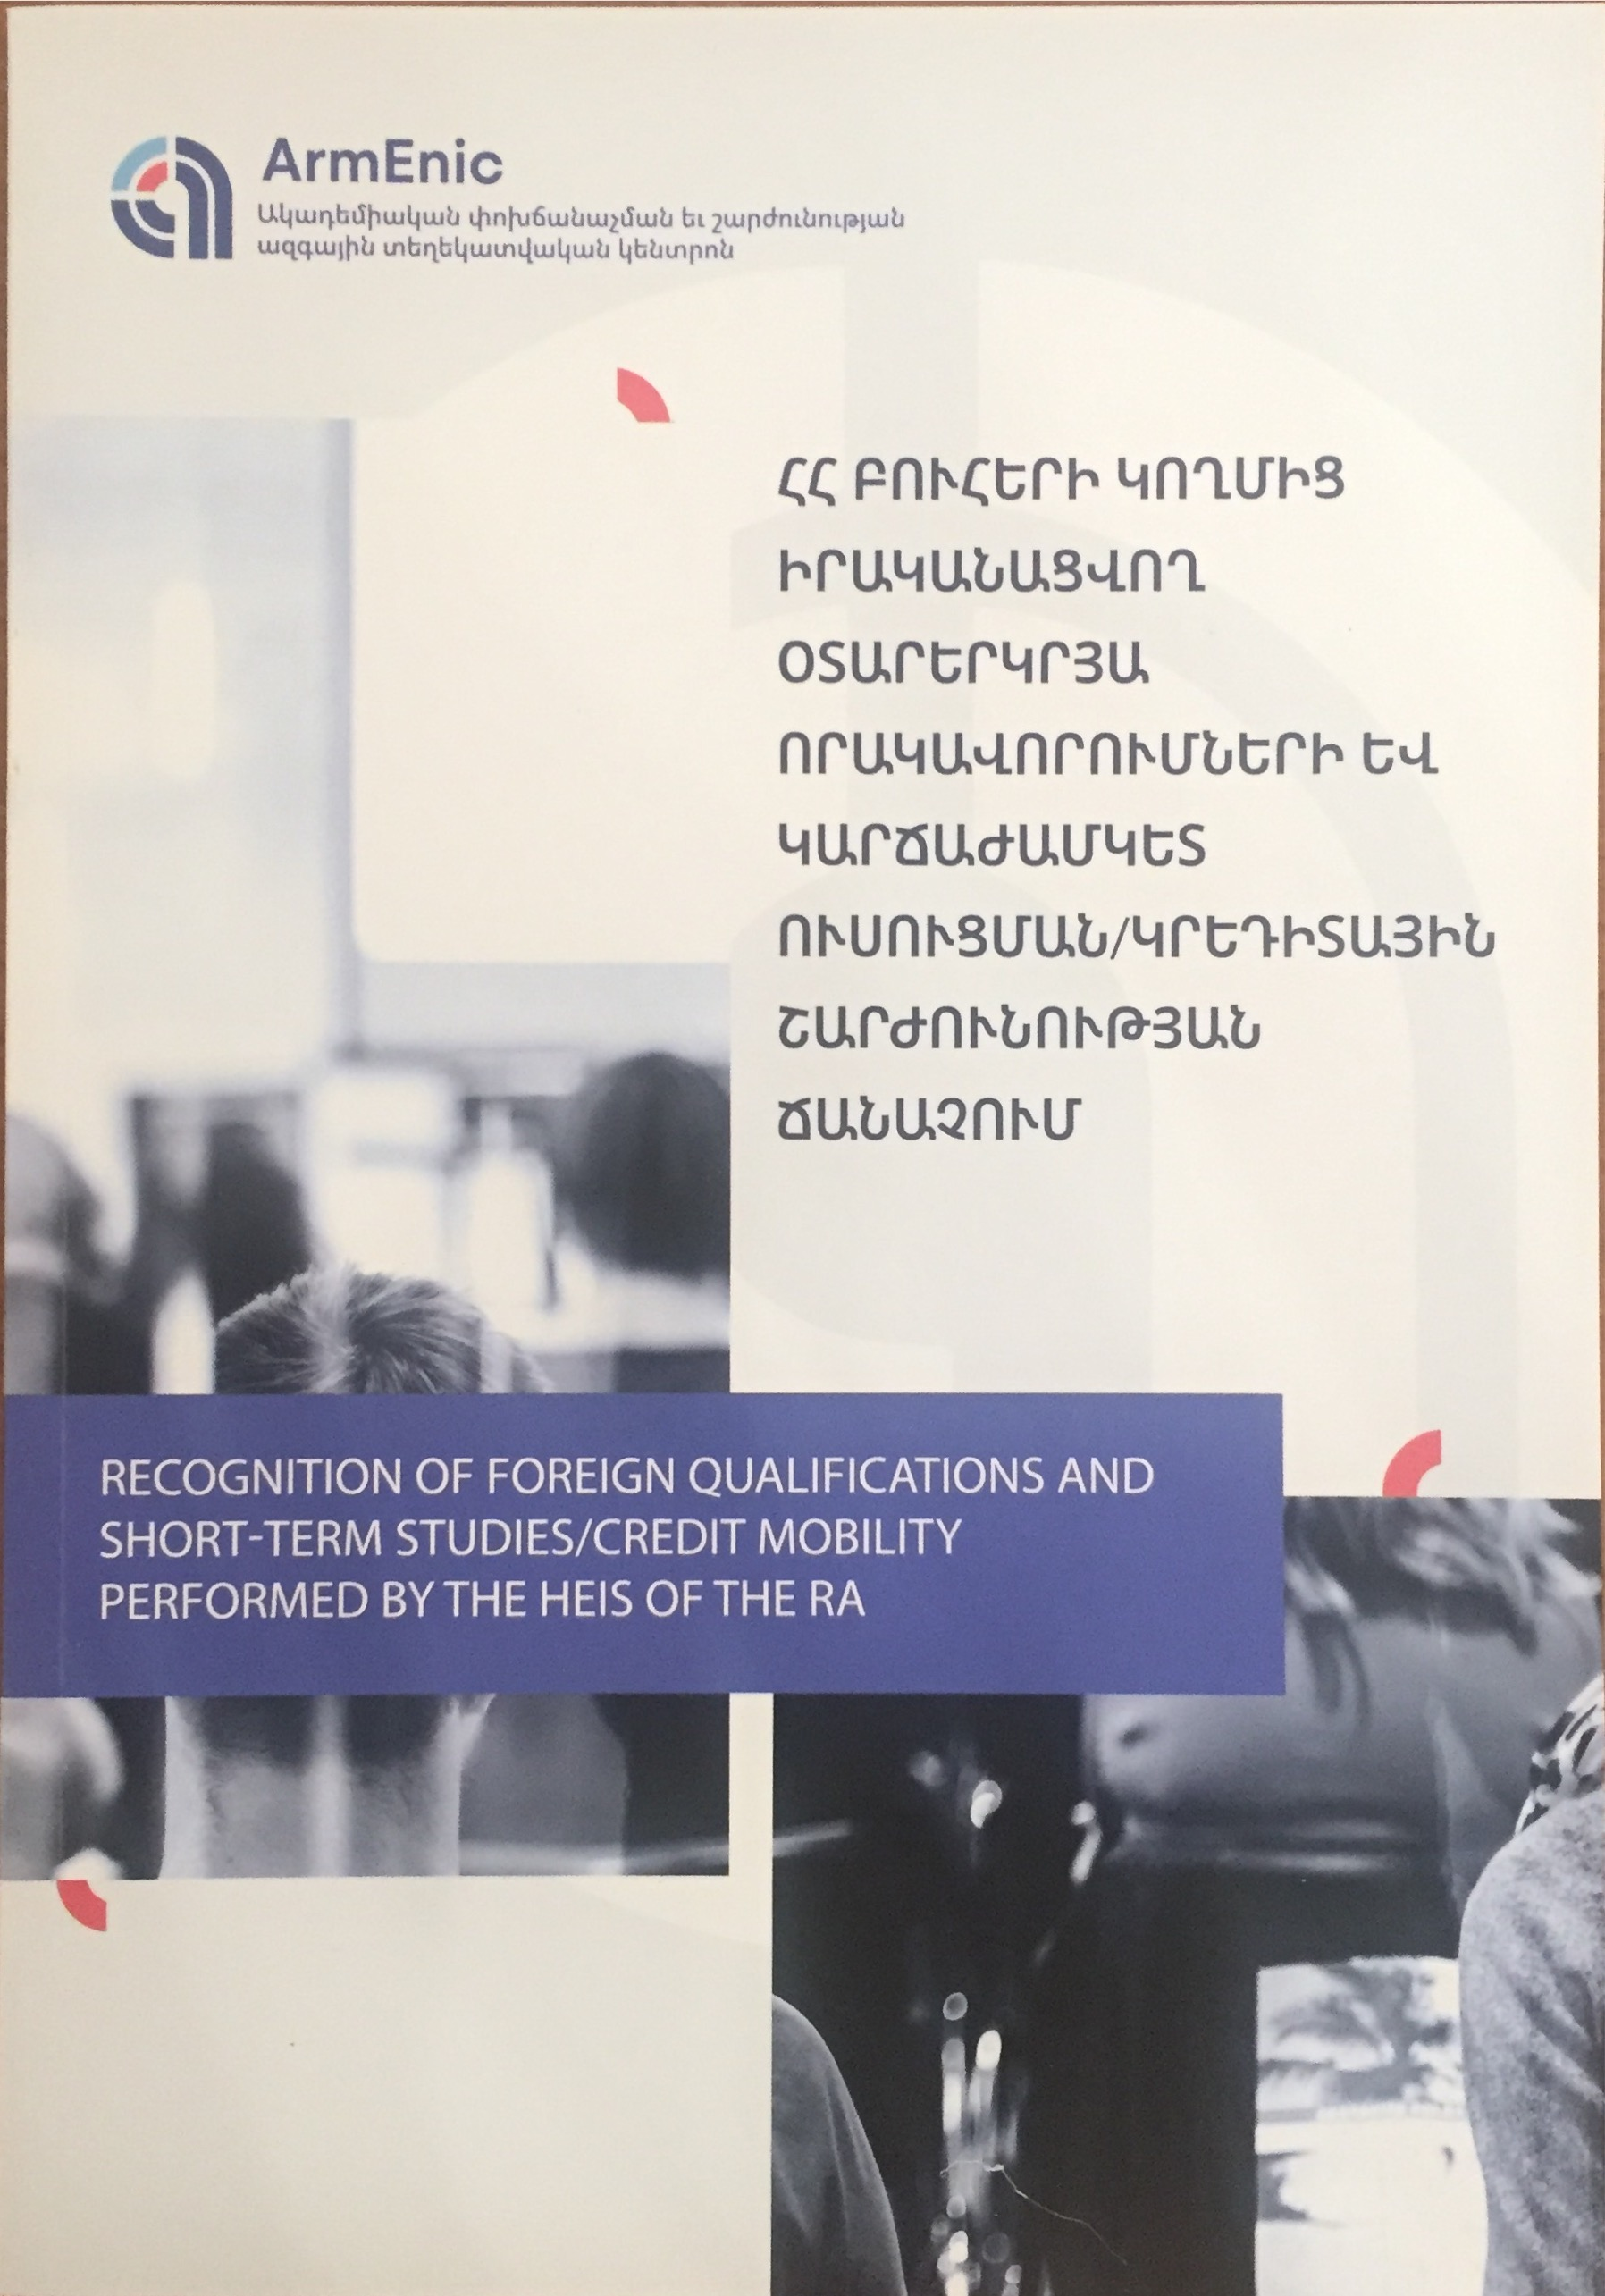 ArmEnic Published the Results of Its Recent Study